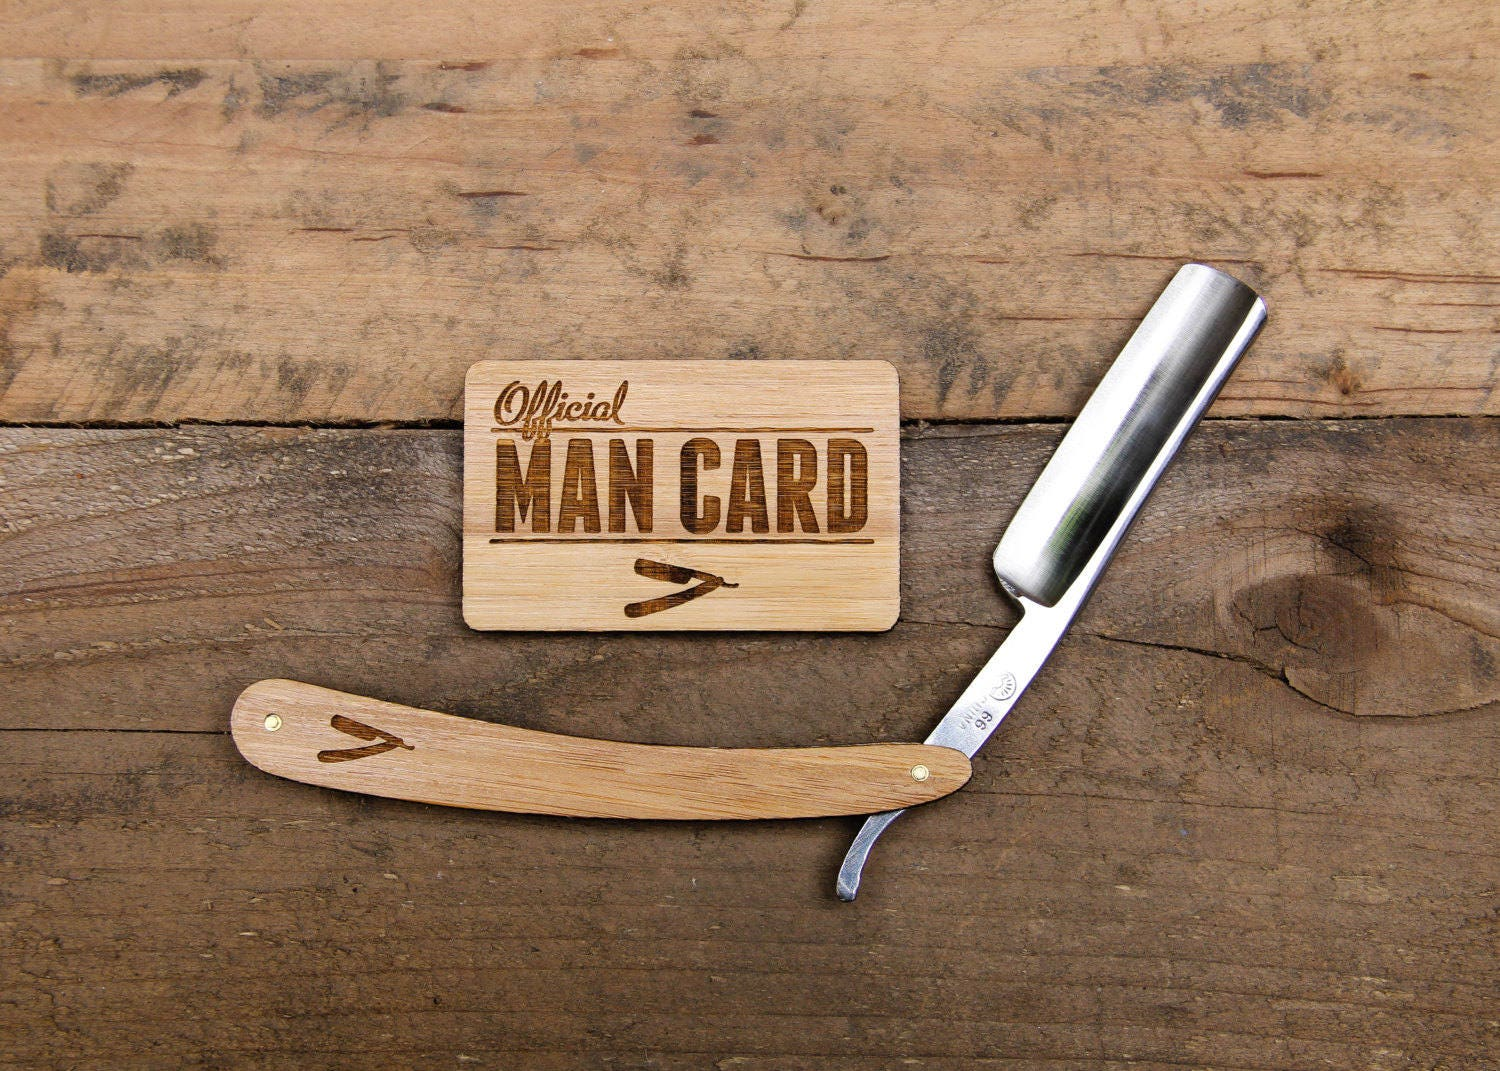 Personalized Straight Razor Shave Set with Engraved Man Card Travel Strop - Vintage Shaving & Grooming Kit with Bamboo Wood Scales